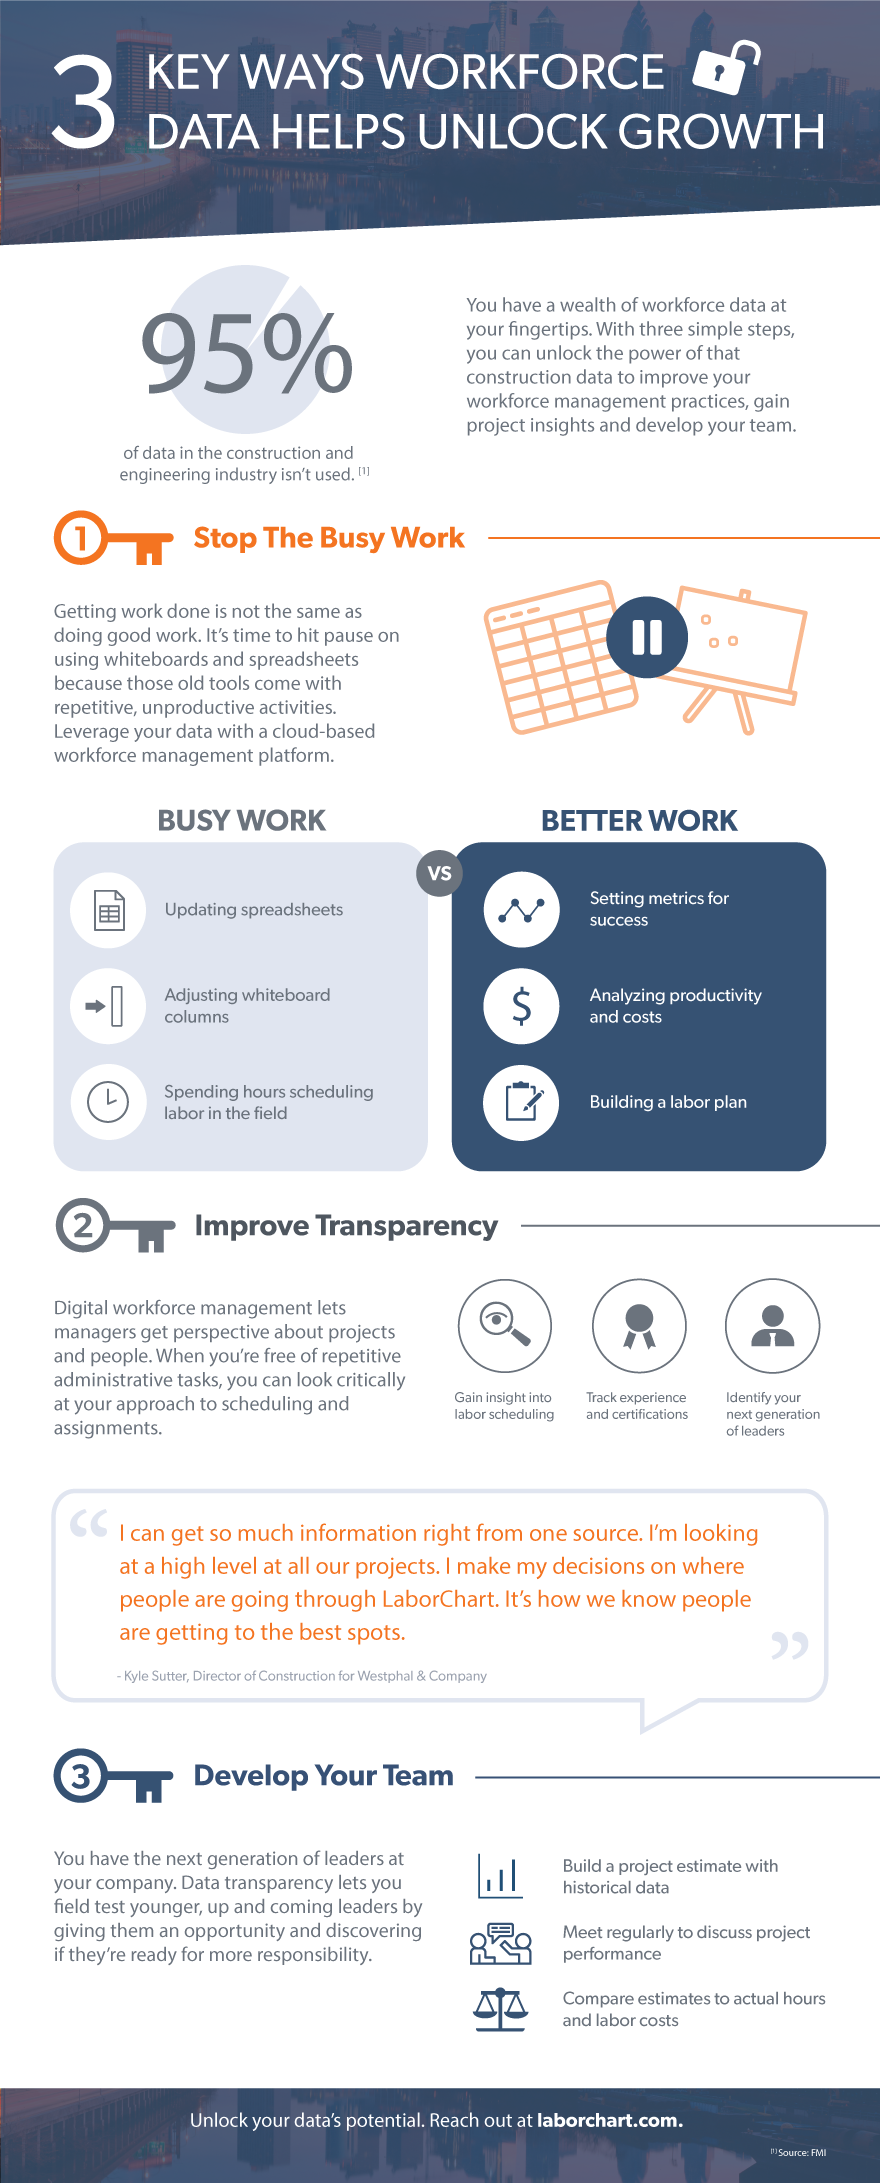 Infographic of 3 key ways workforce data helps unlock growth